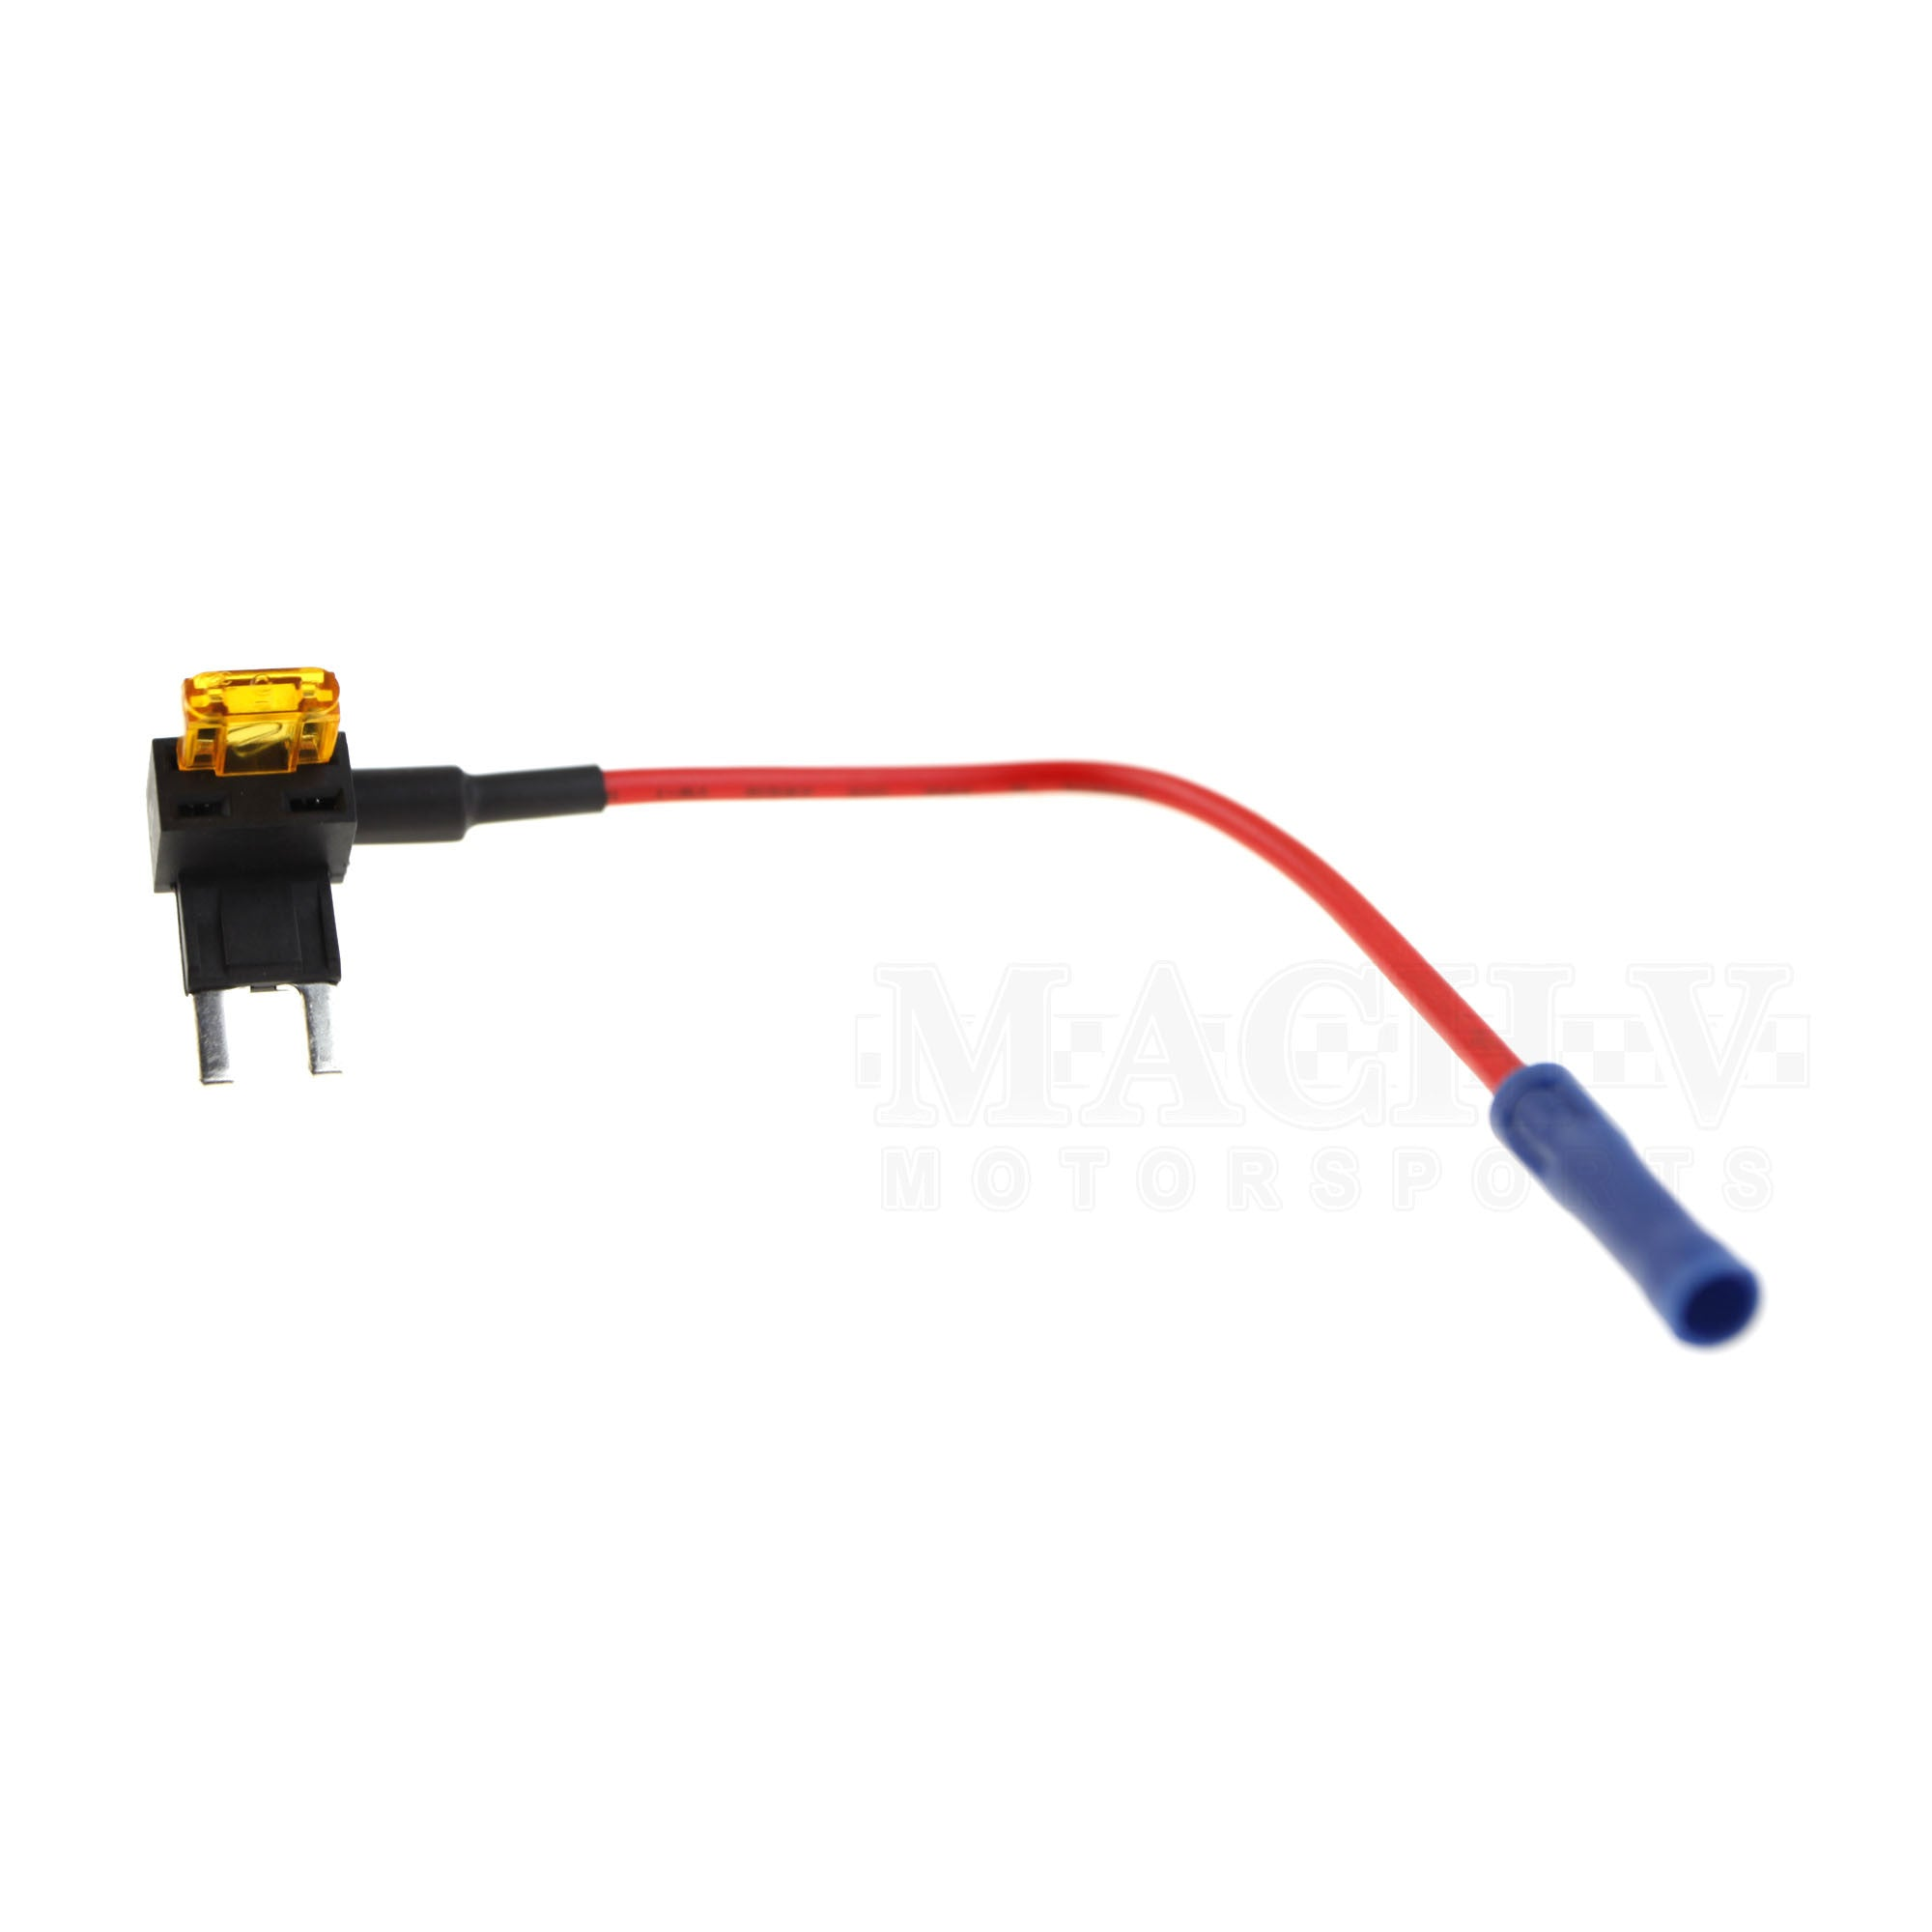 Add A Circuit Search For Wiring Diagrams Addacircuit Standard Blade Fuse Holder 12 Volt Planet With Fastwrx Com Advance Auto Parts 20 Amp